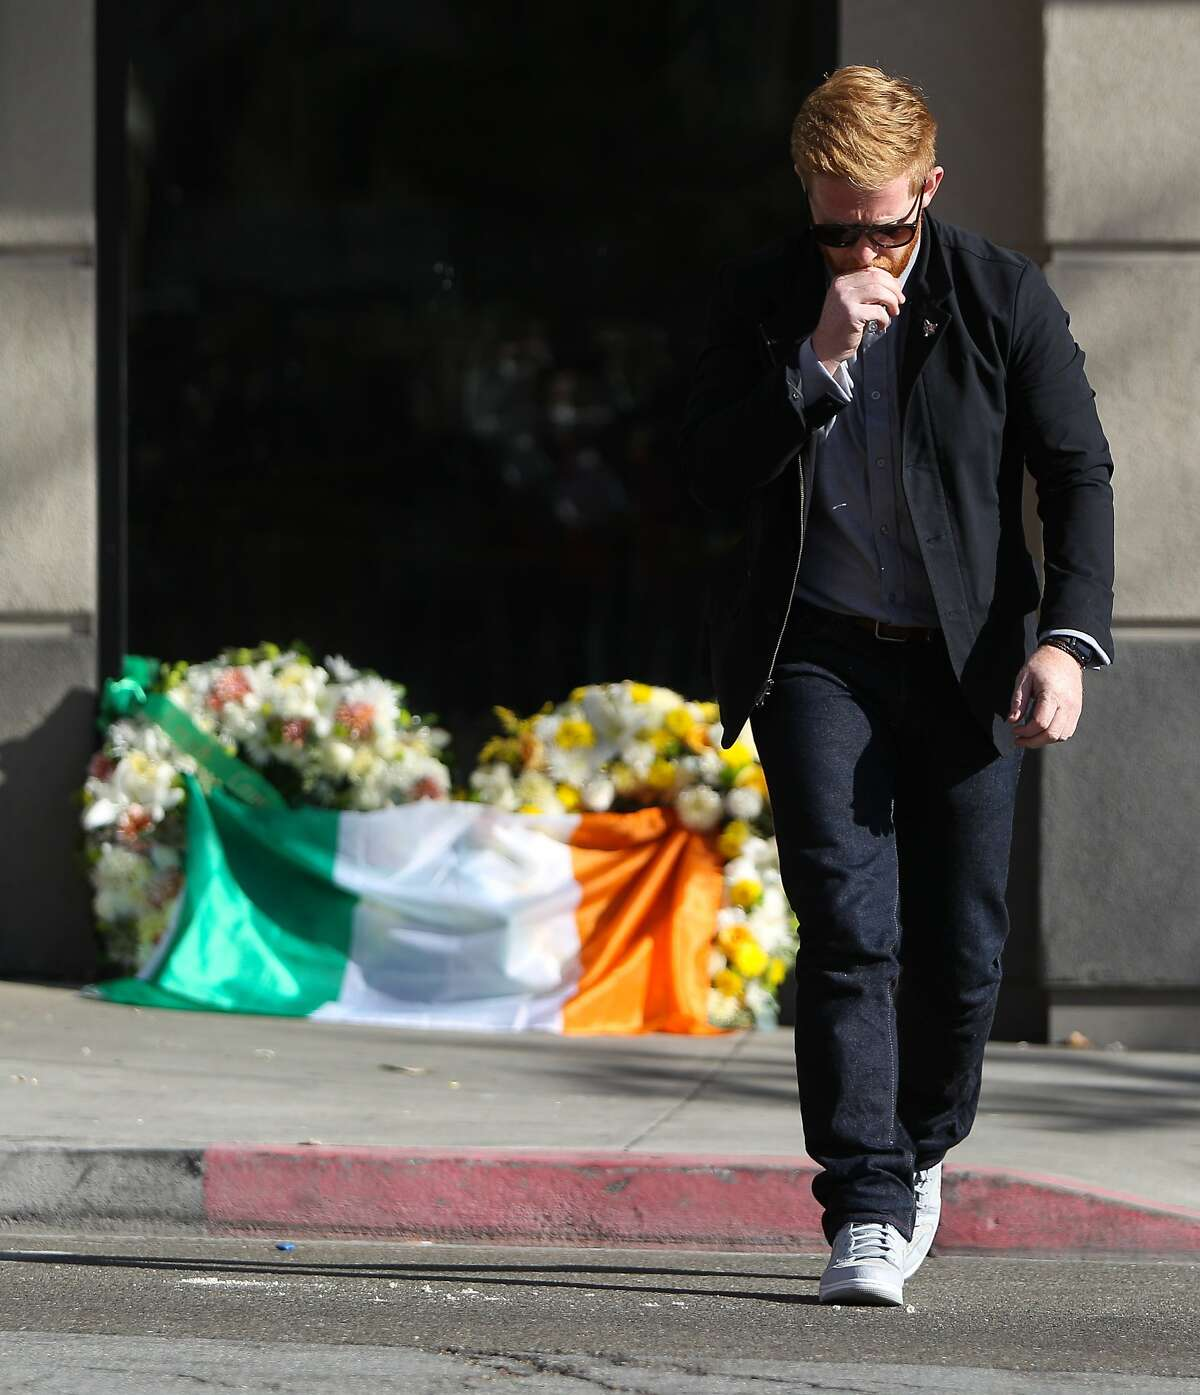 Neil Sands of Irish Network Bay Area departs after laying an Irish flag on wreathes in front of 2020 Kittredge Street in Berkeley, California, on Tuesday, June 16, 2015. The balcony collapse that occurred there killed 6 and injured others.